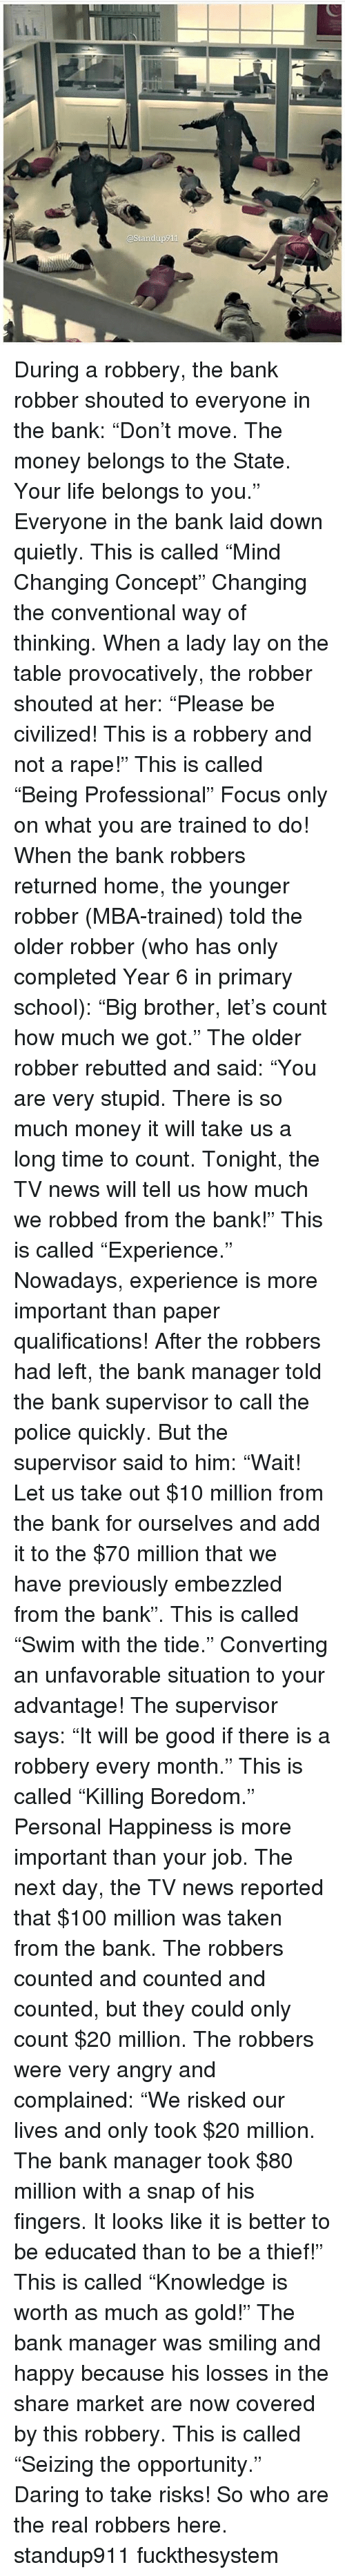 """Rapely: @Standup911 During a robbery, the bank robber shouted to everyone in the bank: """"Don't move. The money belongs to the State. Your life belongs to you."""" Everyone in the bank laid down quietly. This is called """"Mind Changing Concept"""" Changing the conventional way of thinking. When a lady lay on the table provocatively, the robber shouted at her: """"Please be civilized! This is a robbery and not a rape!"""" This is called """"Being Professional"""" Focus only on what you are trained to do! When the bank robbers returned home, the younger robber (MBA-trained) told the older robber (who has only completed Year 6 in primary school): """"Big brother, let's count how much we got."""" The older robber rebutted and said: """"You are very stupid. There is so much money it will take us a long time to count. Tonight, the TV news will tell us how much we robbed from the bank!"""" This is called """"Experience."""" Nowadays, experience is more important than paper qualifications! After the robbers had left, the bank manager told the bank supervisor to call the police quickly. But the supervisor said to him: """"Wait! Let us take out $10 million from the bank for ourselves and add it to the $70 million that we have previously embezzled from the bank"""". This is called """"Swim with the tide."""" Converting an unfavorable situation to your advantage! The supervisor says: """"It will be good if there is a robbery every month."""" This is called """"Killing Boredom."""" Personal Happiness is more important than your job. The next day, the TV news reported that $100 million was taken from the bank. The robbers counted and counted and counted, but they could only count $20 million. The robbers were very angry and complained: """"We risked our lives and only took $20 million. The bank manager took $80 million with a snap of his fingers. It looks like it is better to be educated than to be a thief!"""" This is called """"Knowledge is worth as much as gold!"""" The bank manager was smiling and happy because his losses in the share market are now """